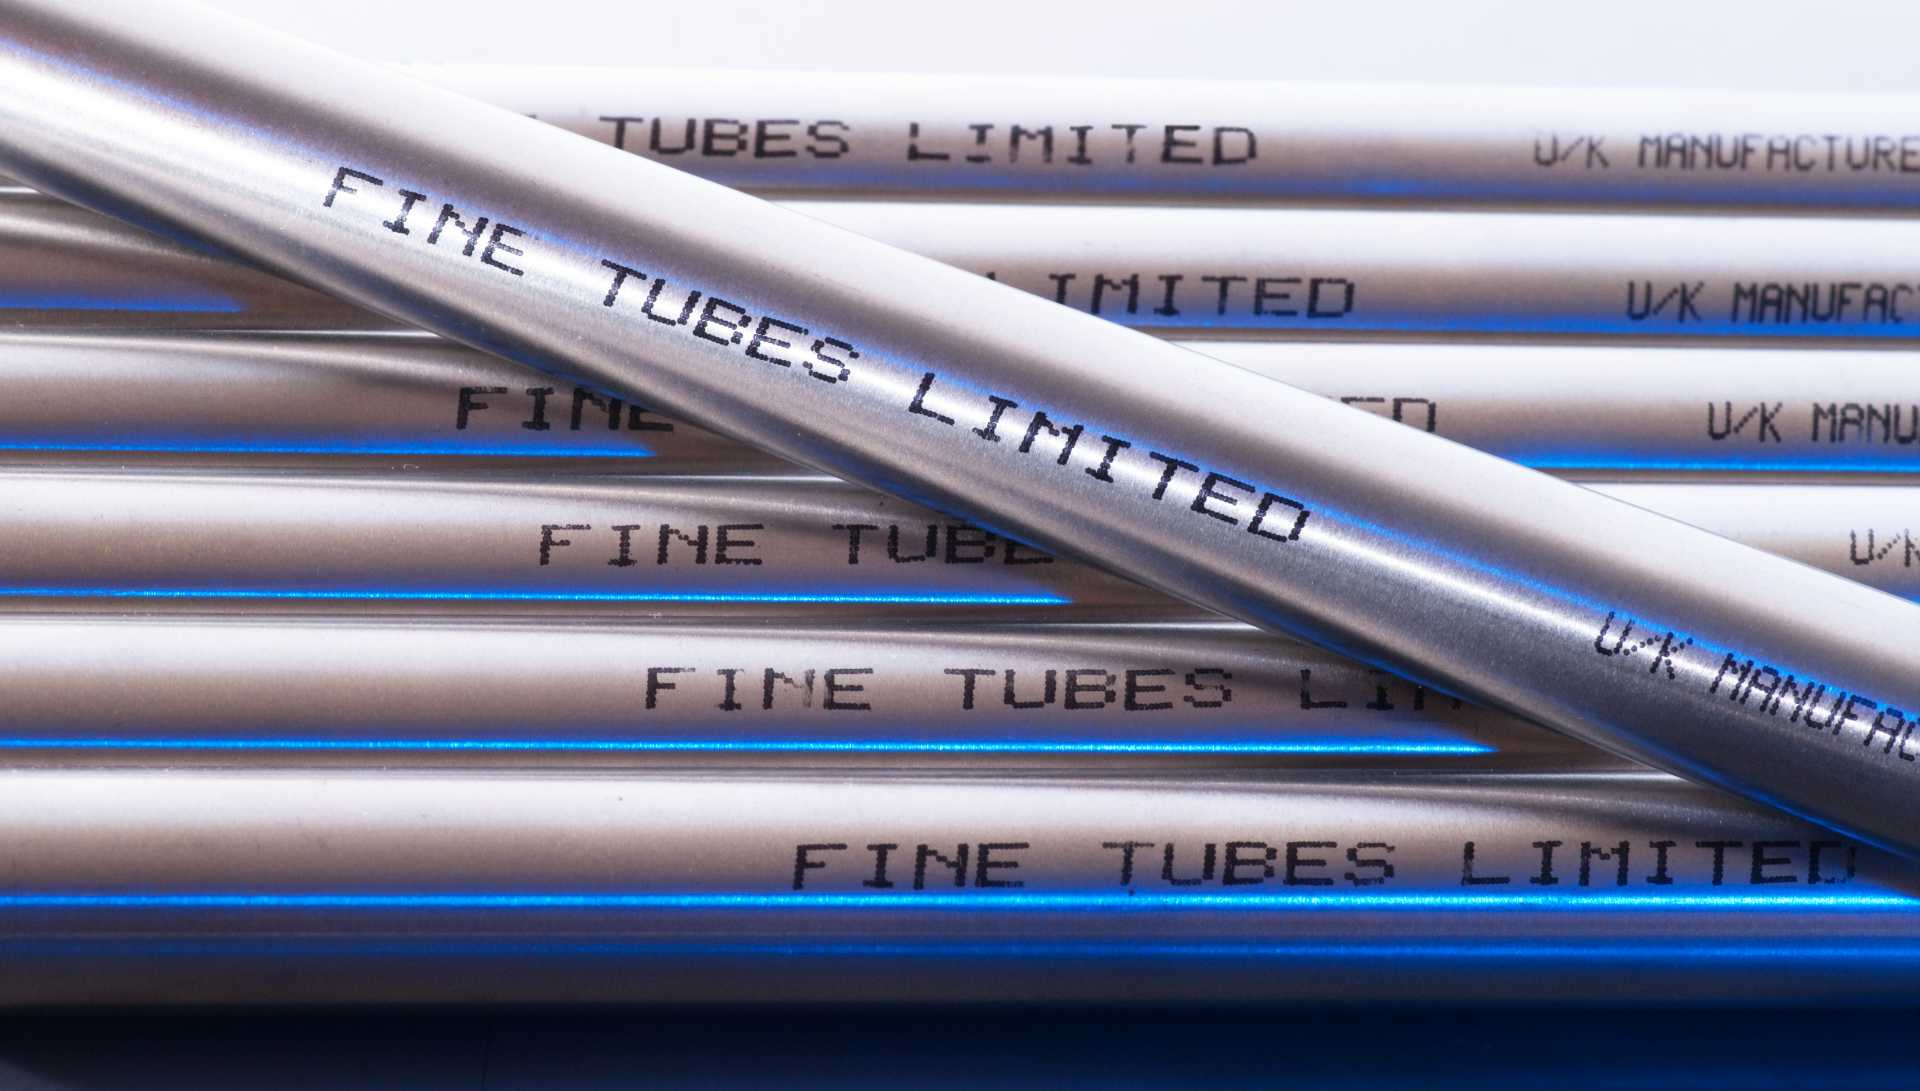 Fine Tubes have created tubes for aeroplane's hydraulic systems that enable the planes to stay in the air - image courtesy of Fine Tubes Ltd